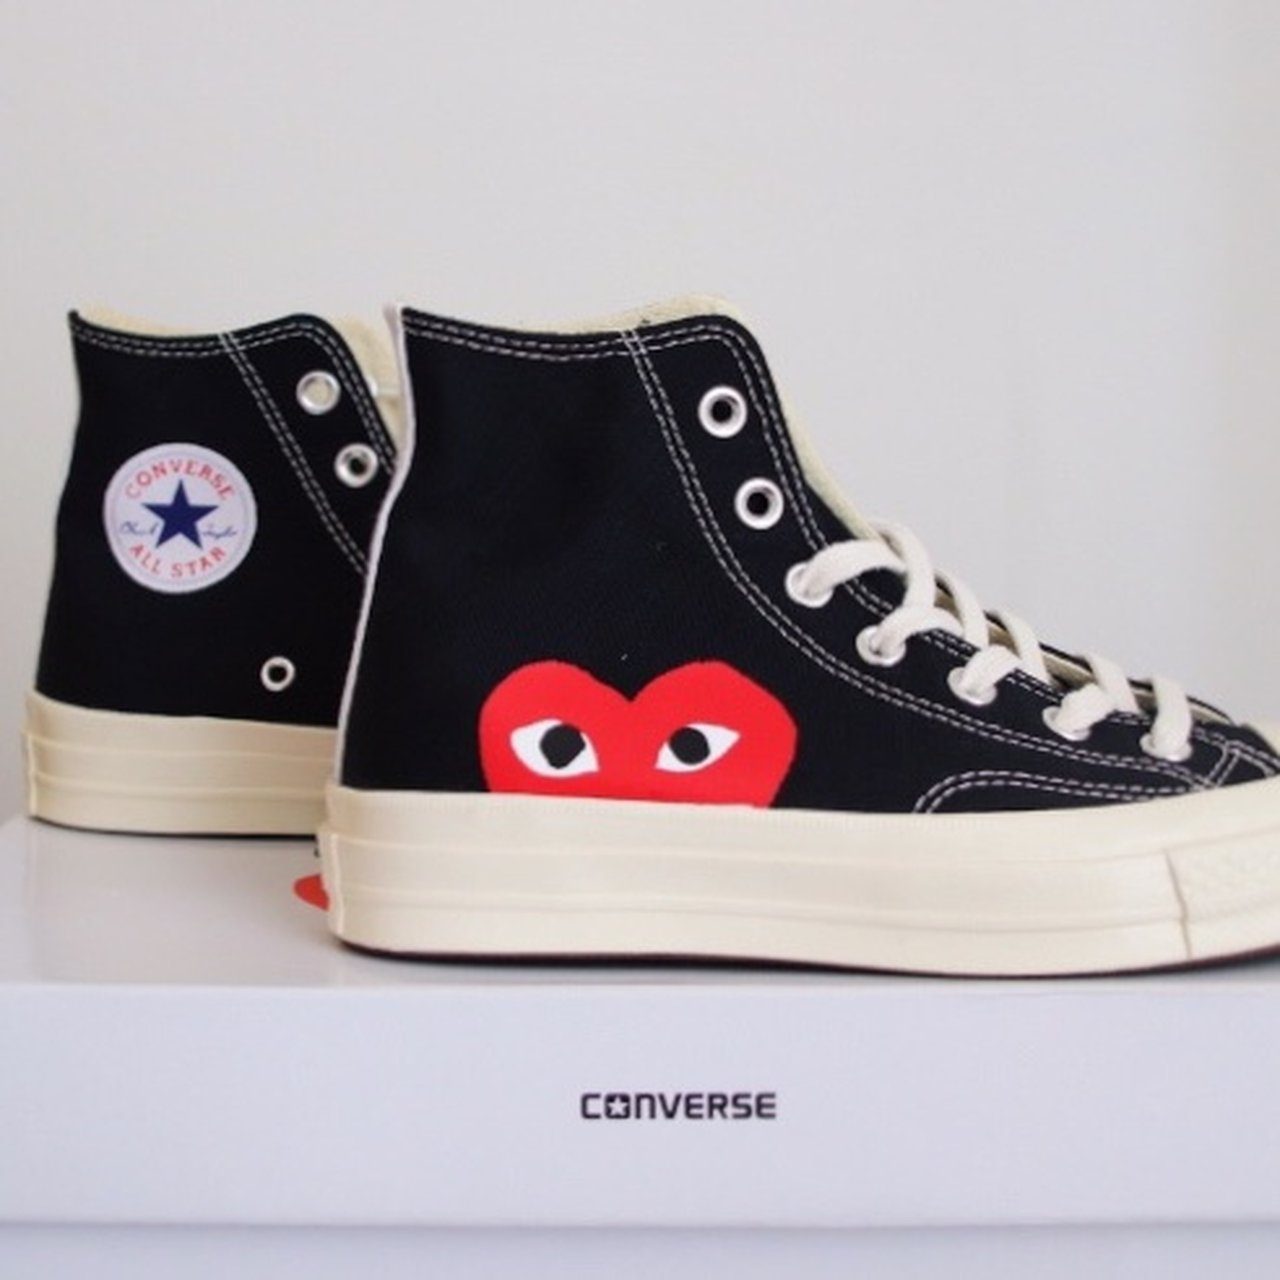 921c18960 @hannaburns. 11 months ago. Edinburgh, United Kingdom. CDG x Converse.